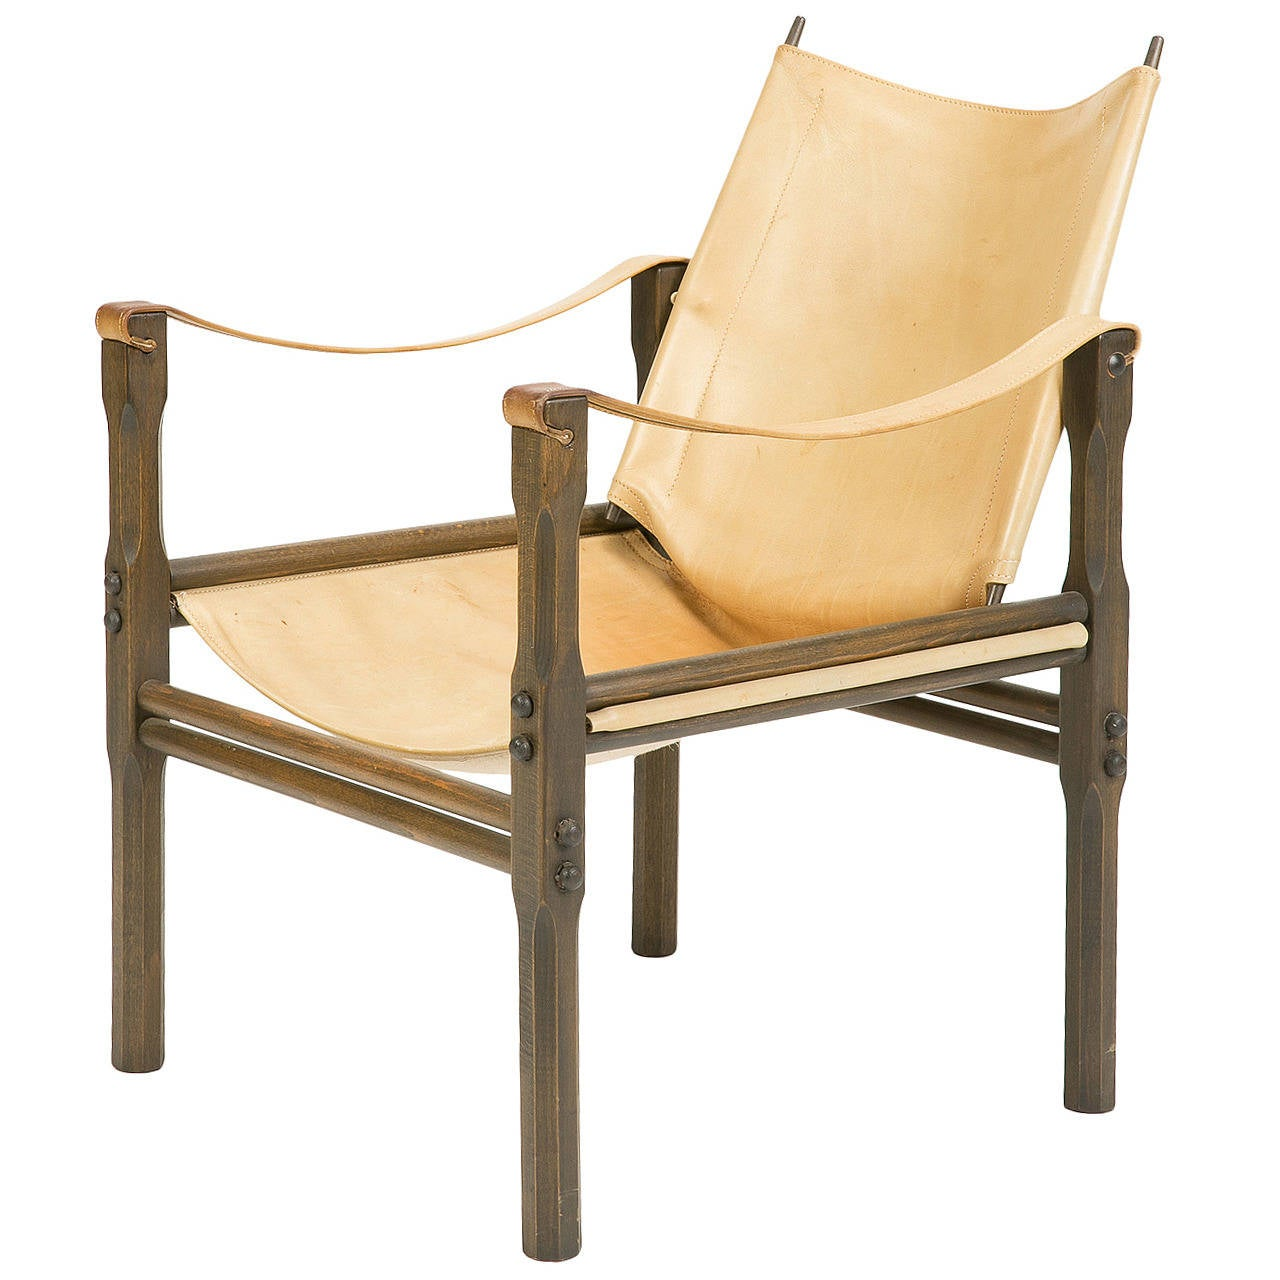 Safari Chair Safari Chair Attributed To Franco Legler By Zanotta 1950s